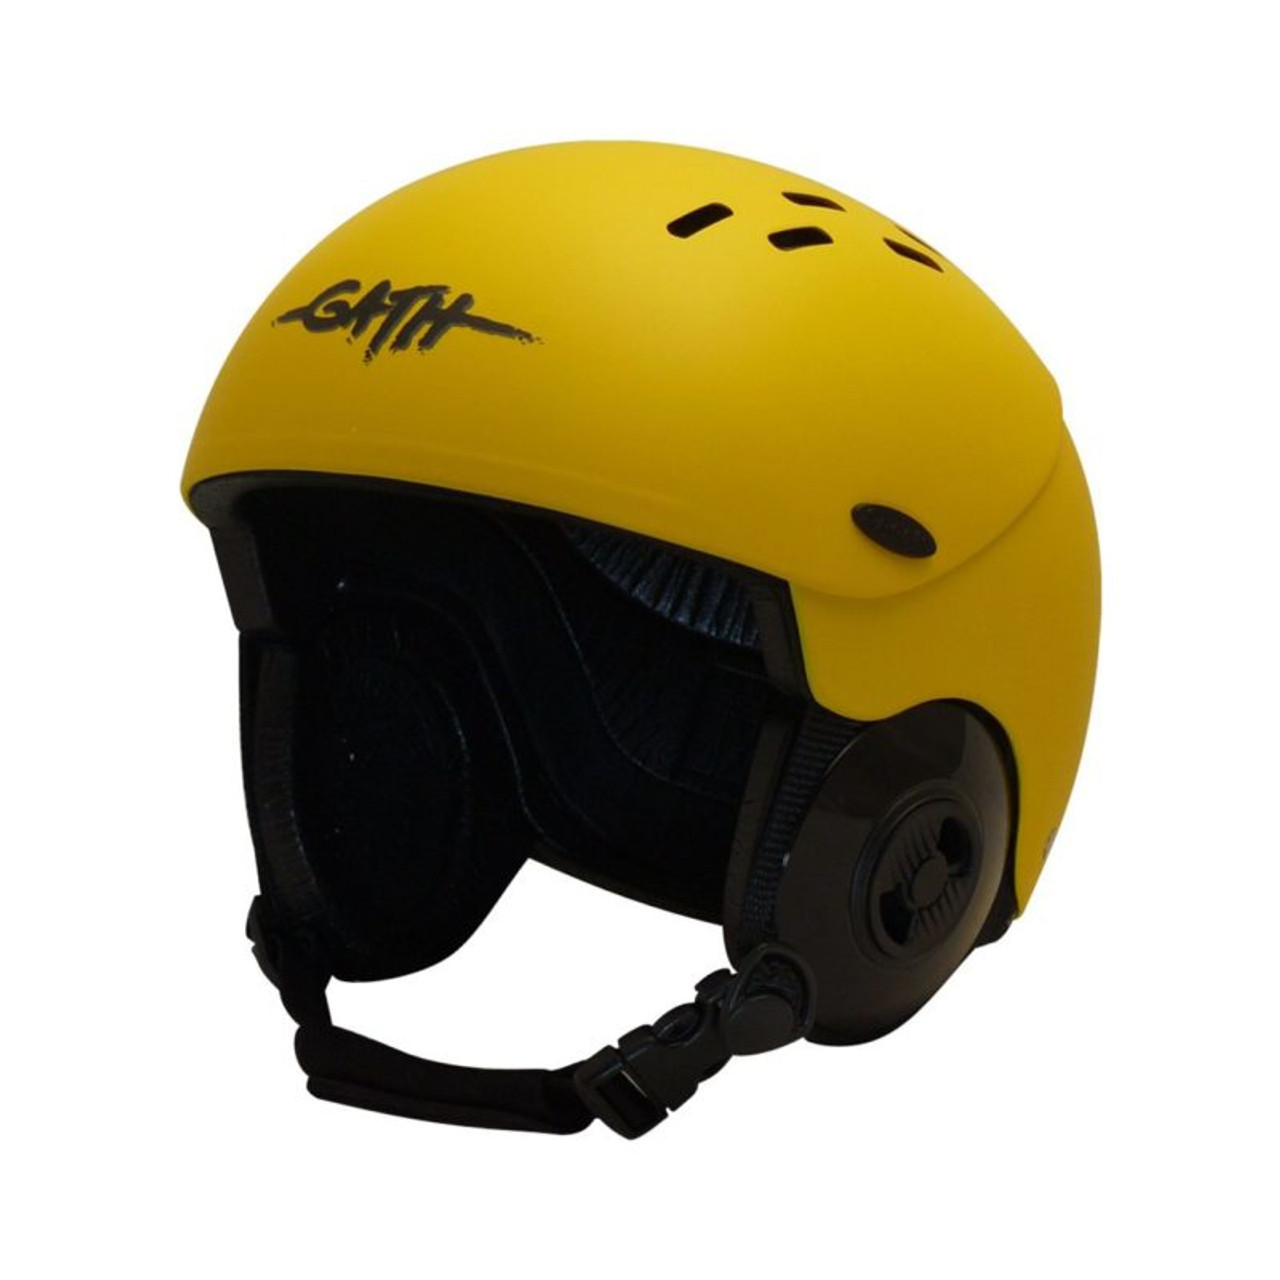 Gath Gedi Sports Helmet - Yellow